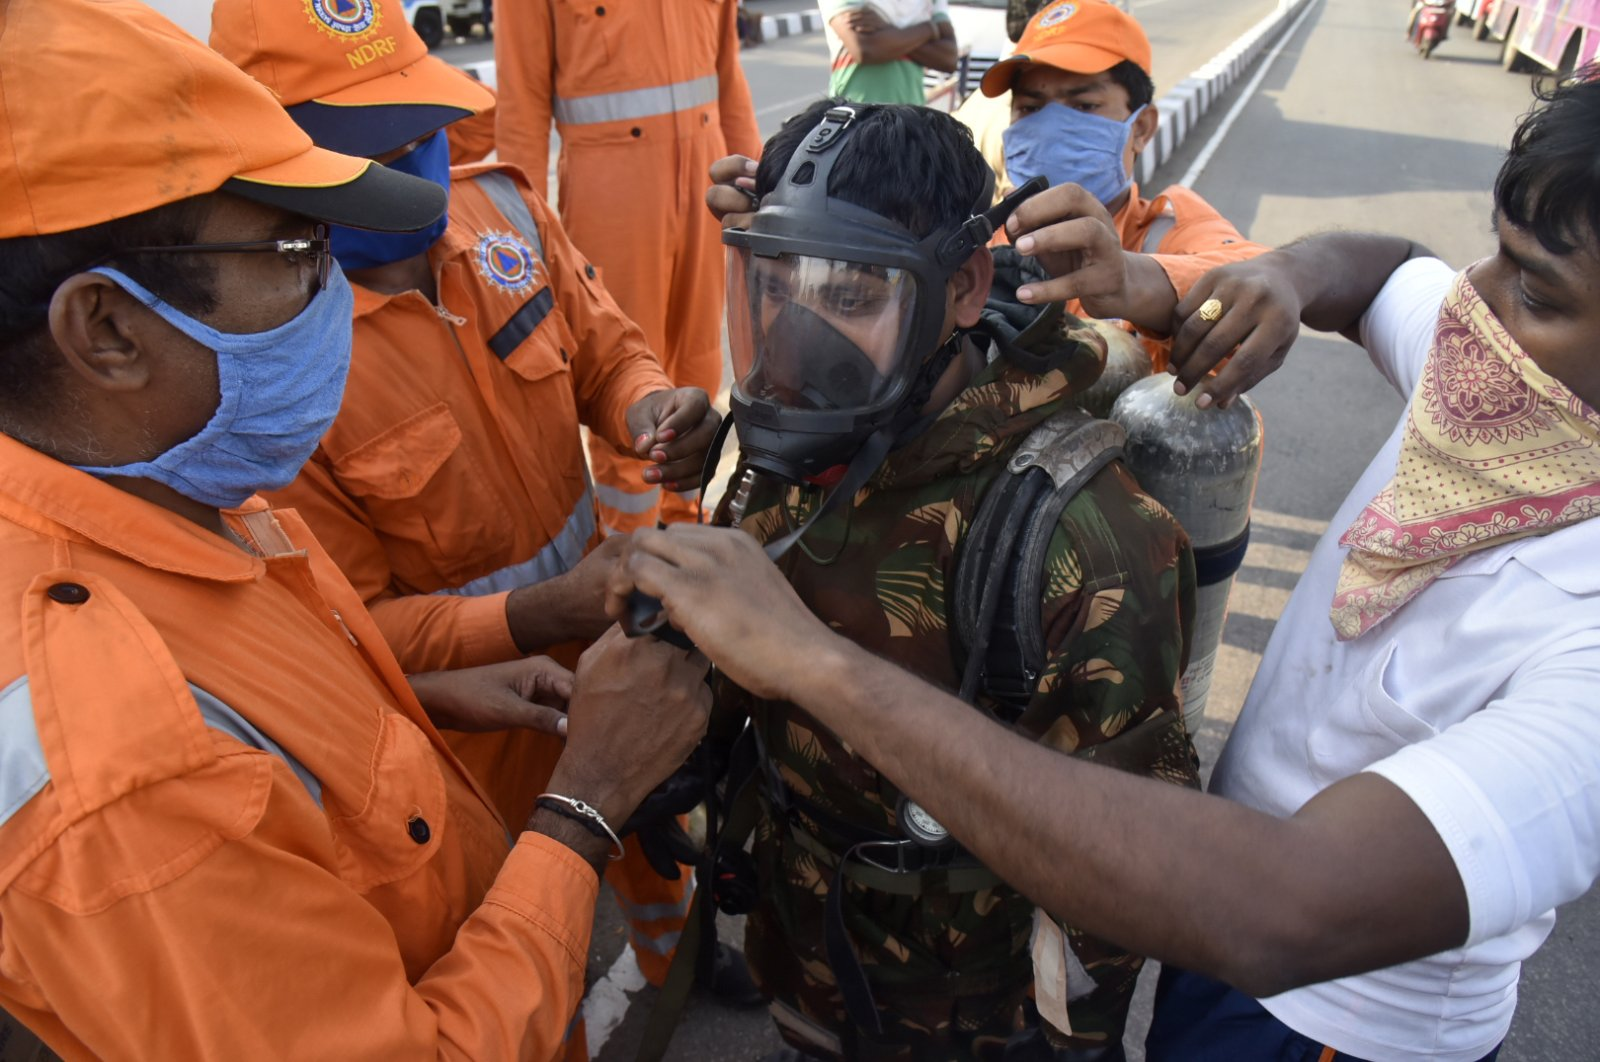 A National Disaster Response Force (NDRF) soldier is fitted with gear before he proceeds to the area from where chemical gas leaked in Vishakhapatnam, India, Thursday, May 7, 2020. (AP Photo)